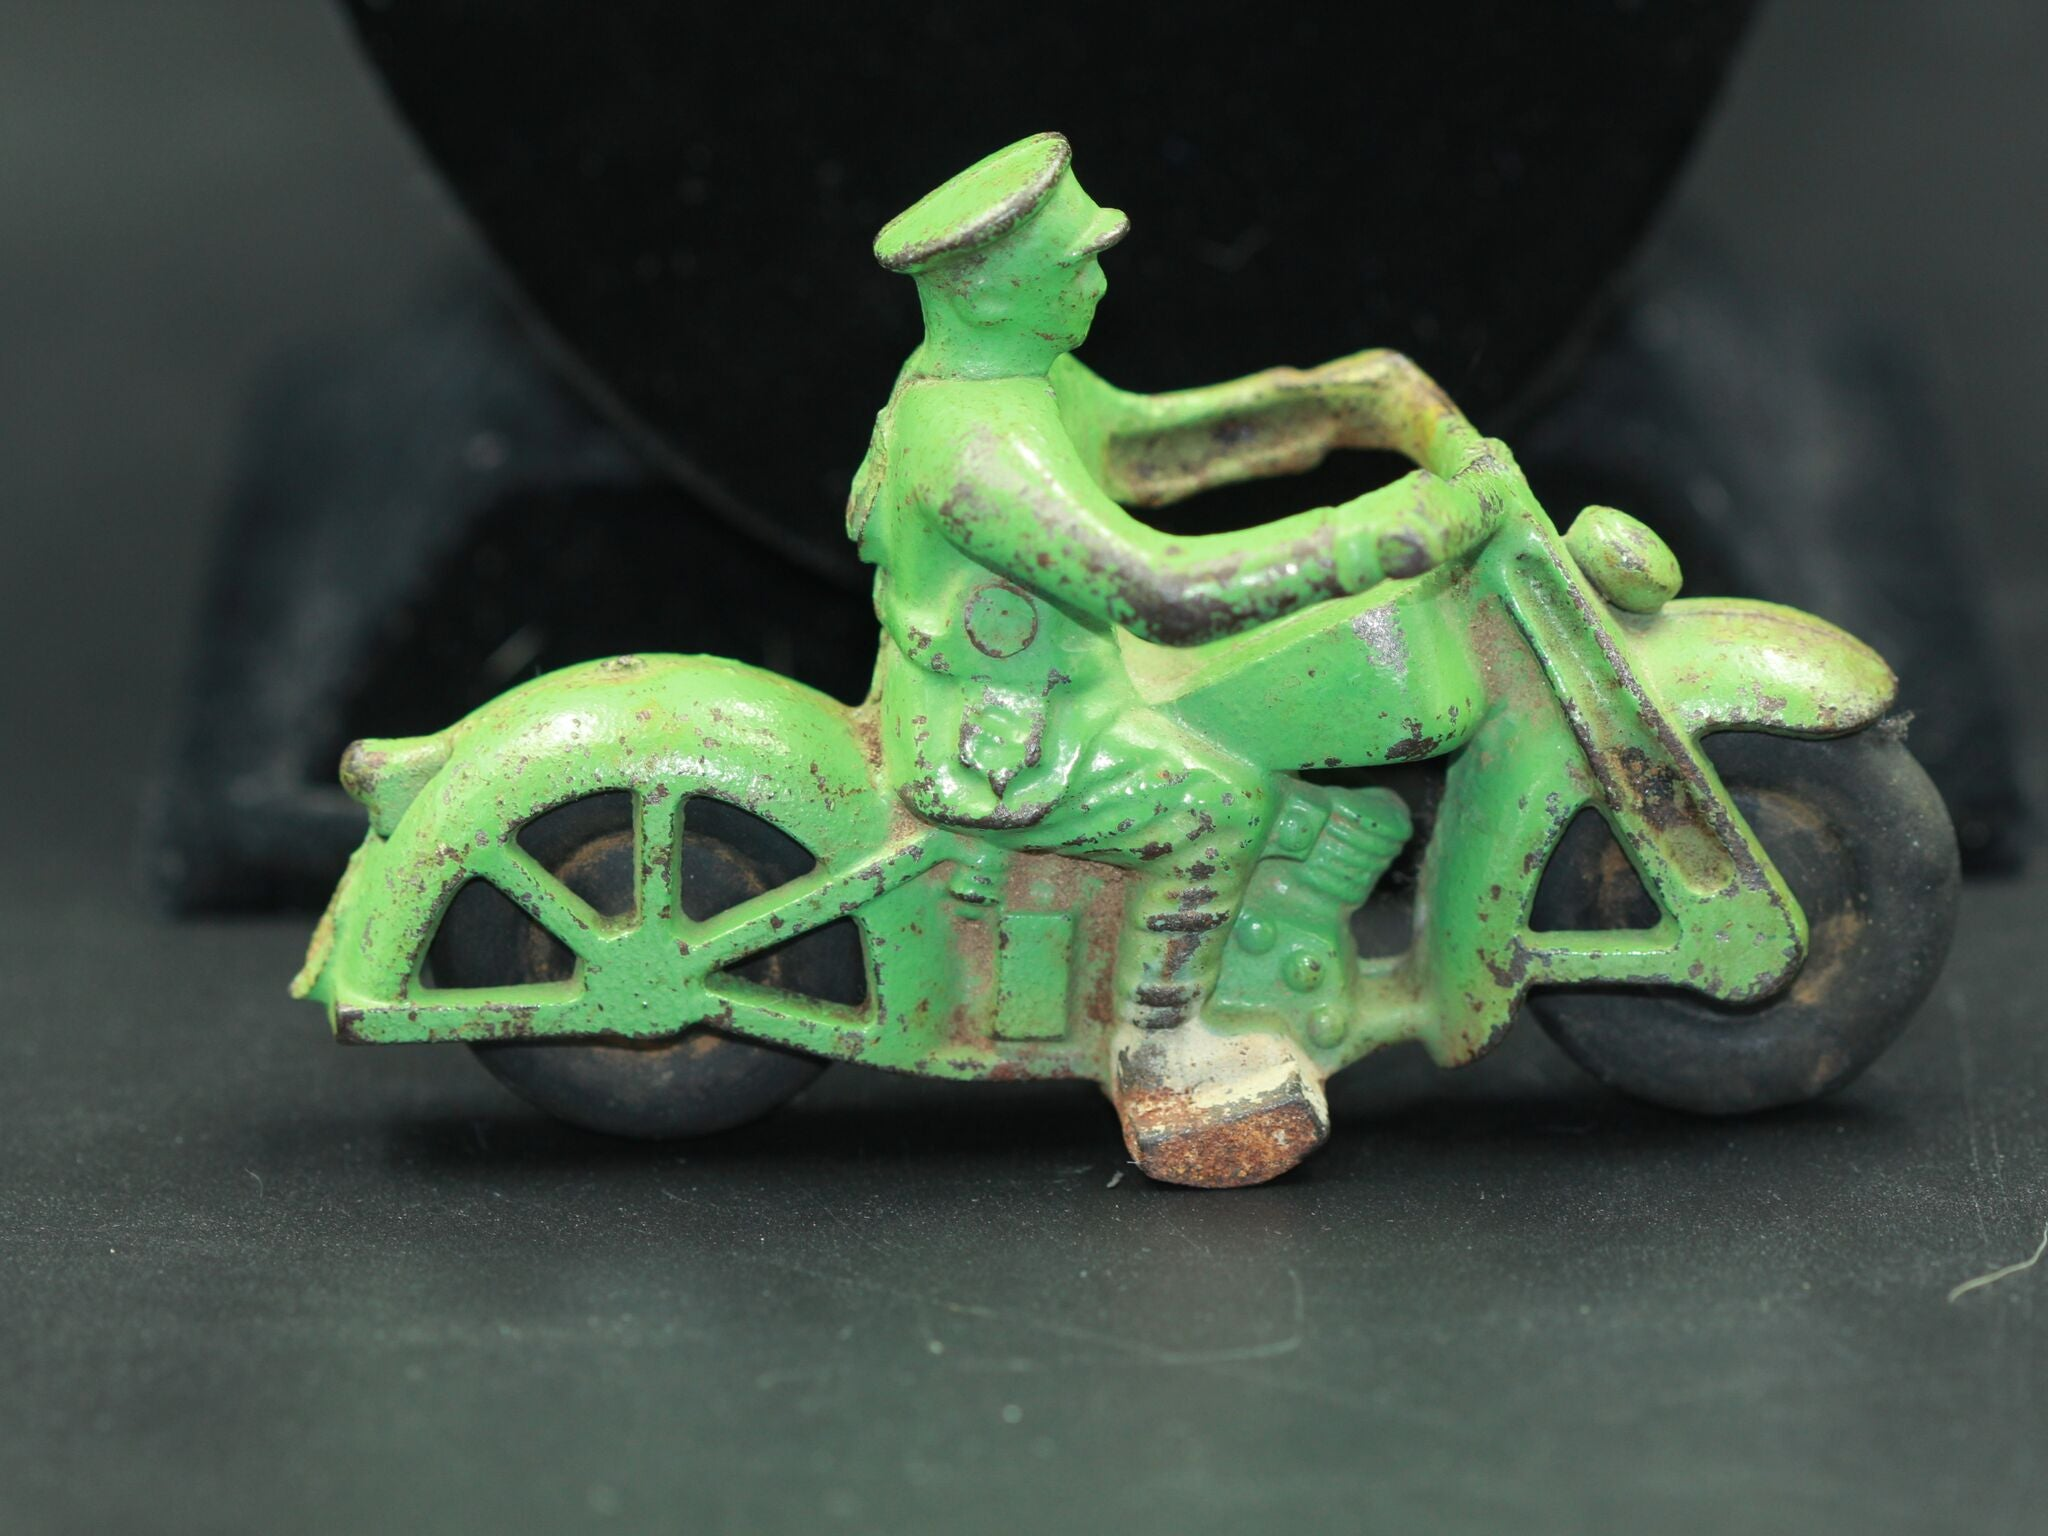 Hubley Toy Motorcycle